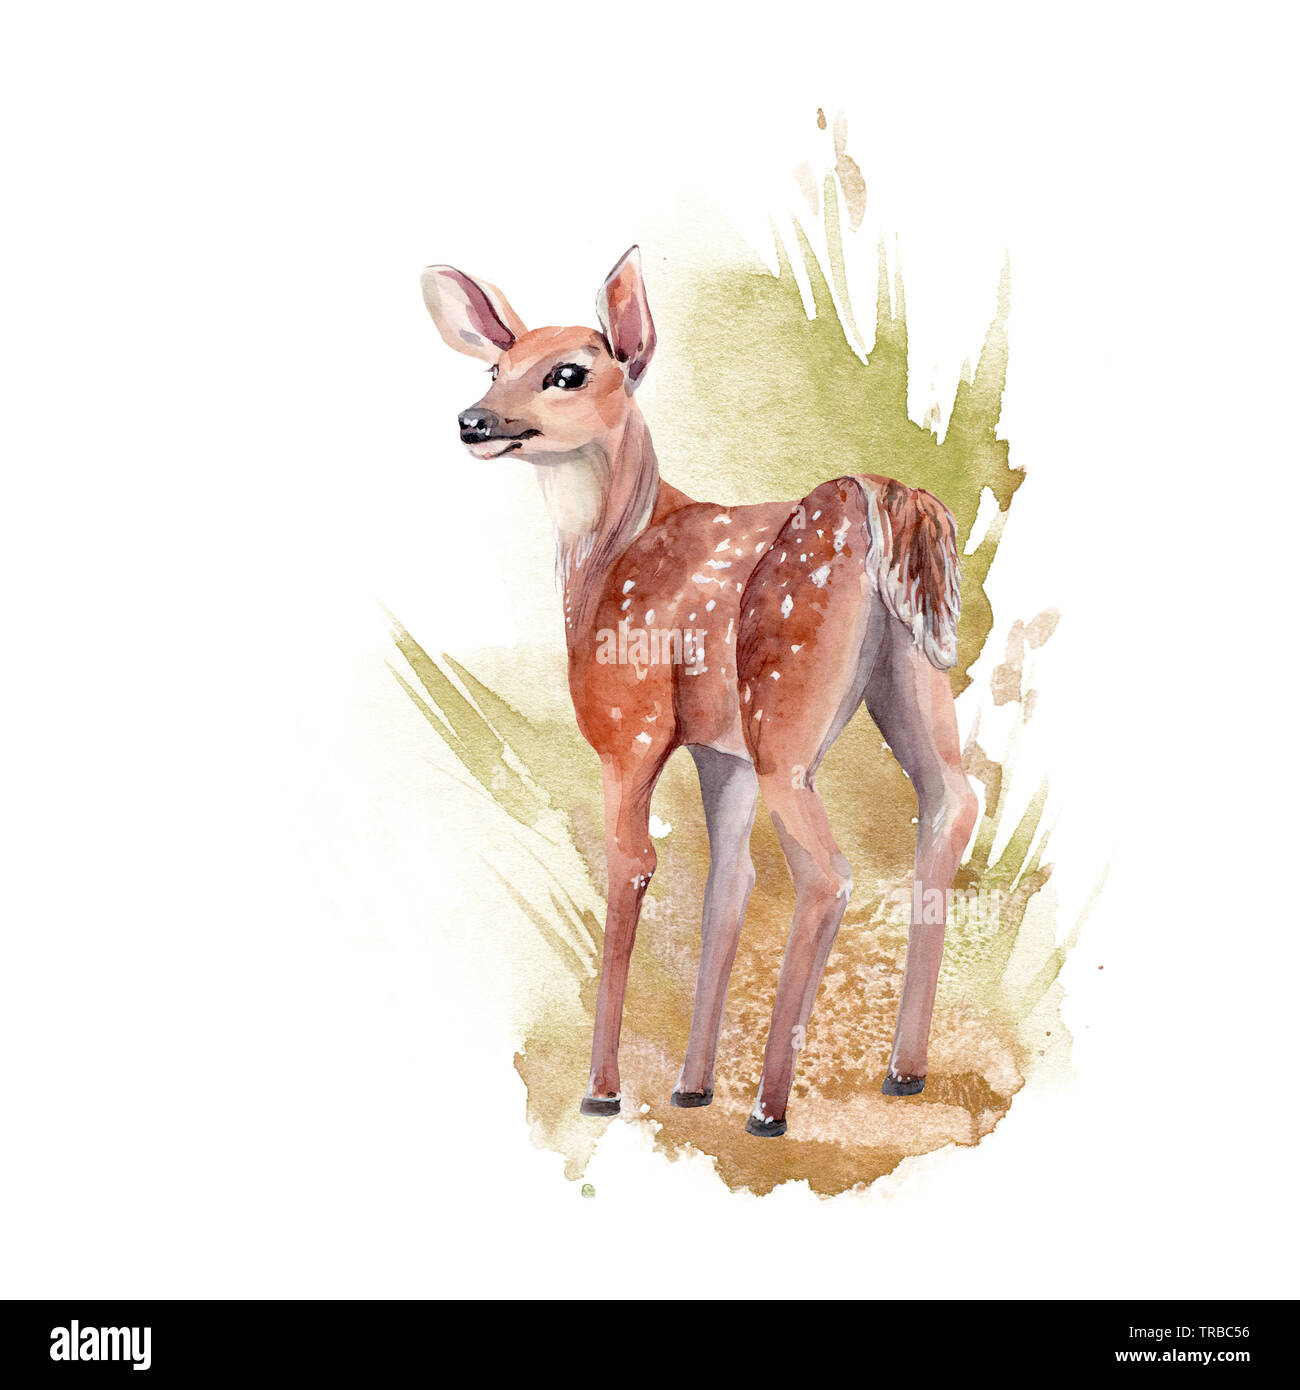 watercolor forest animal watercolor deer stock photo alamy https www alamy com watercolor forest animal watercolor deer image255333266 html